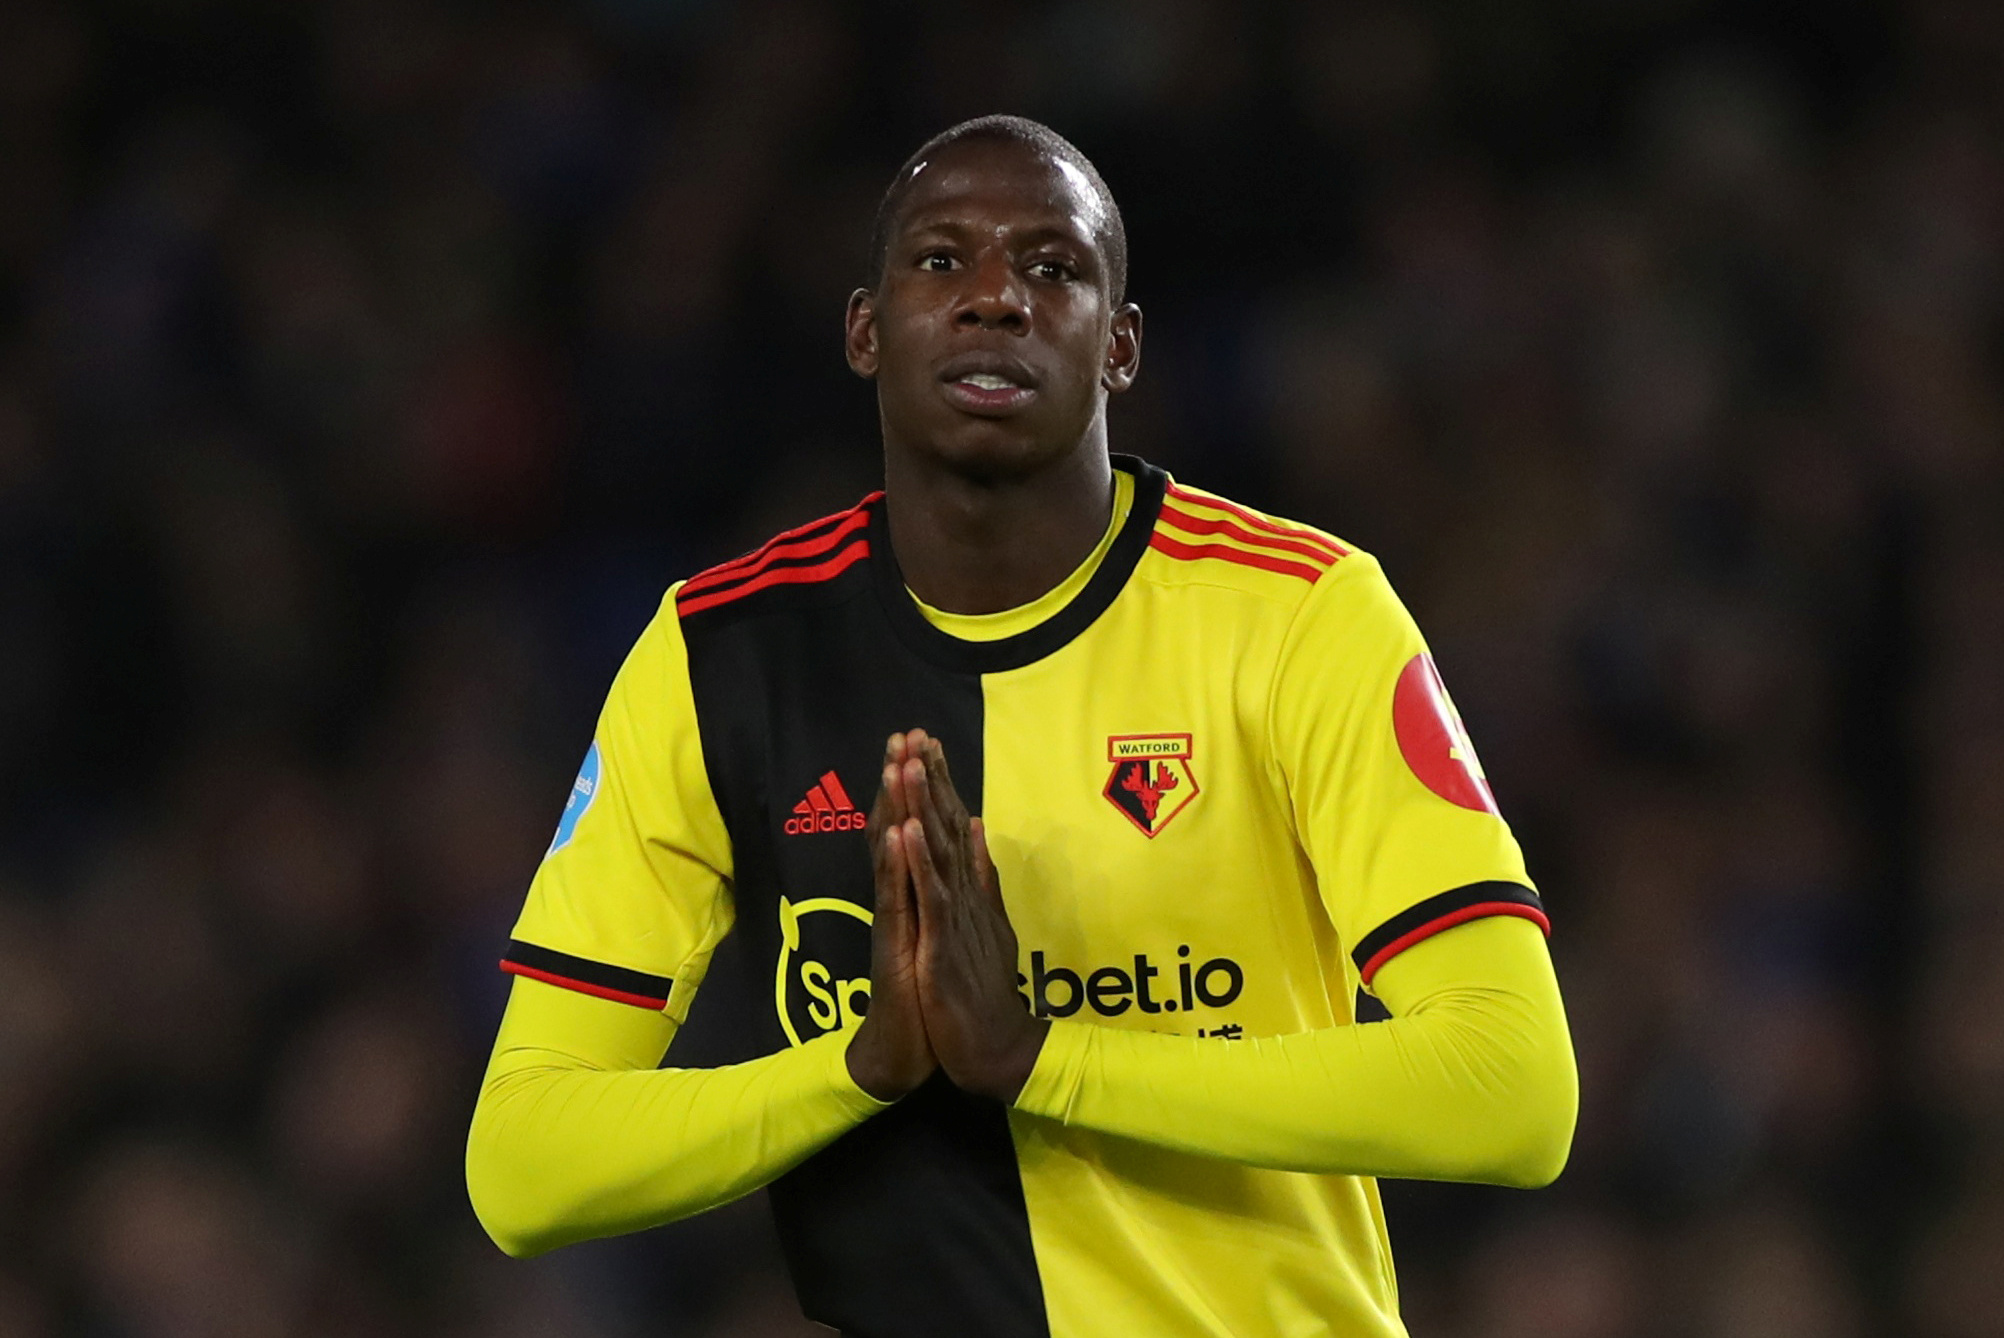 Abdoulaye Doucoure reportedly wants to leave Watford